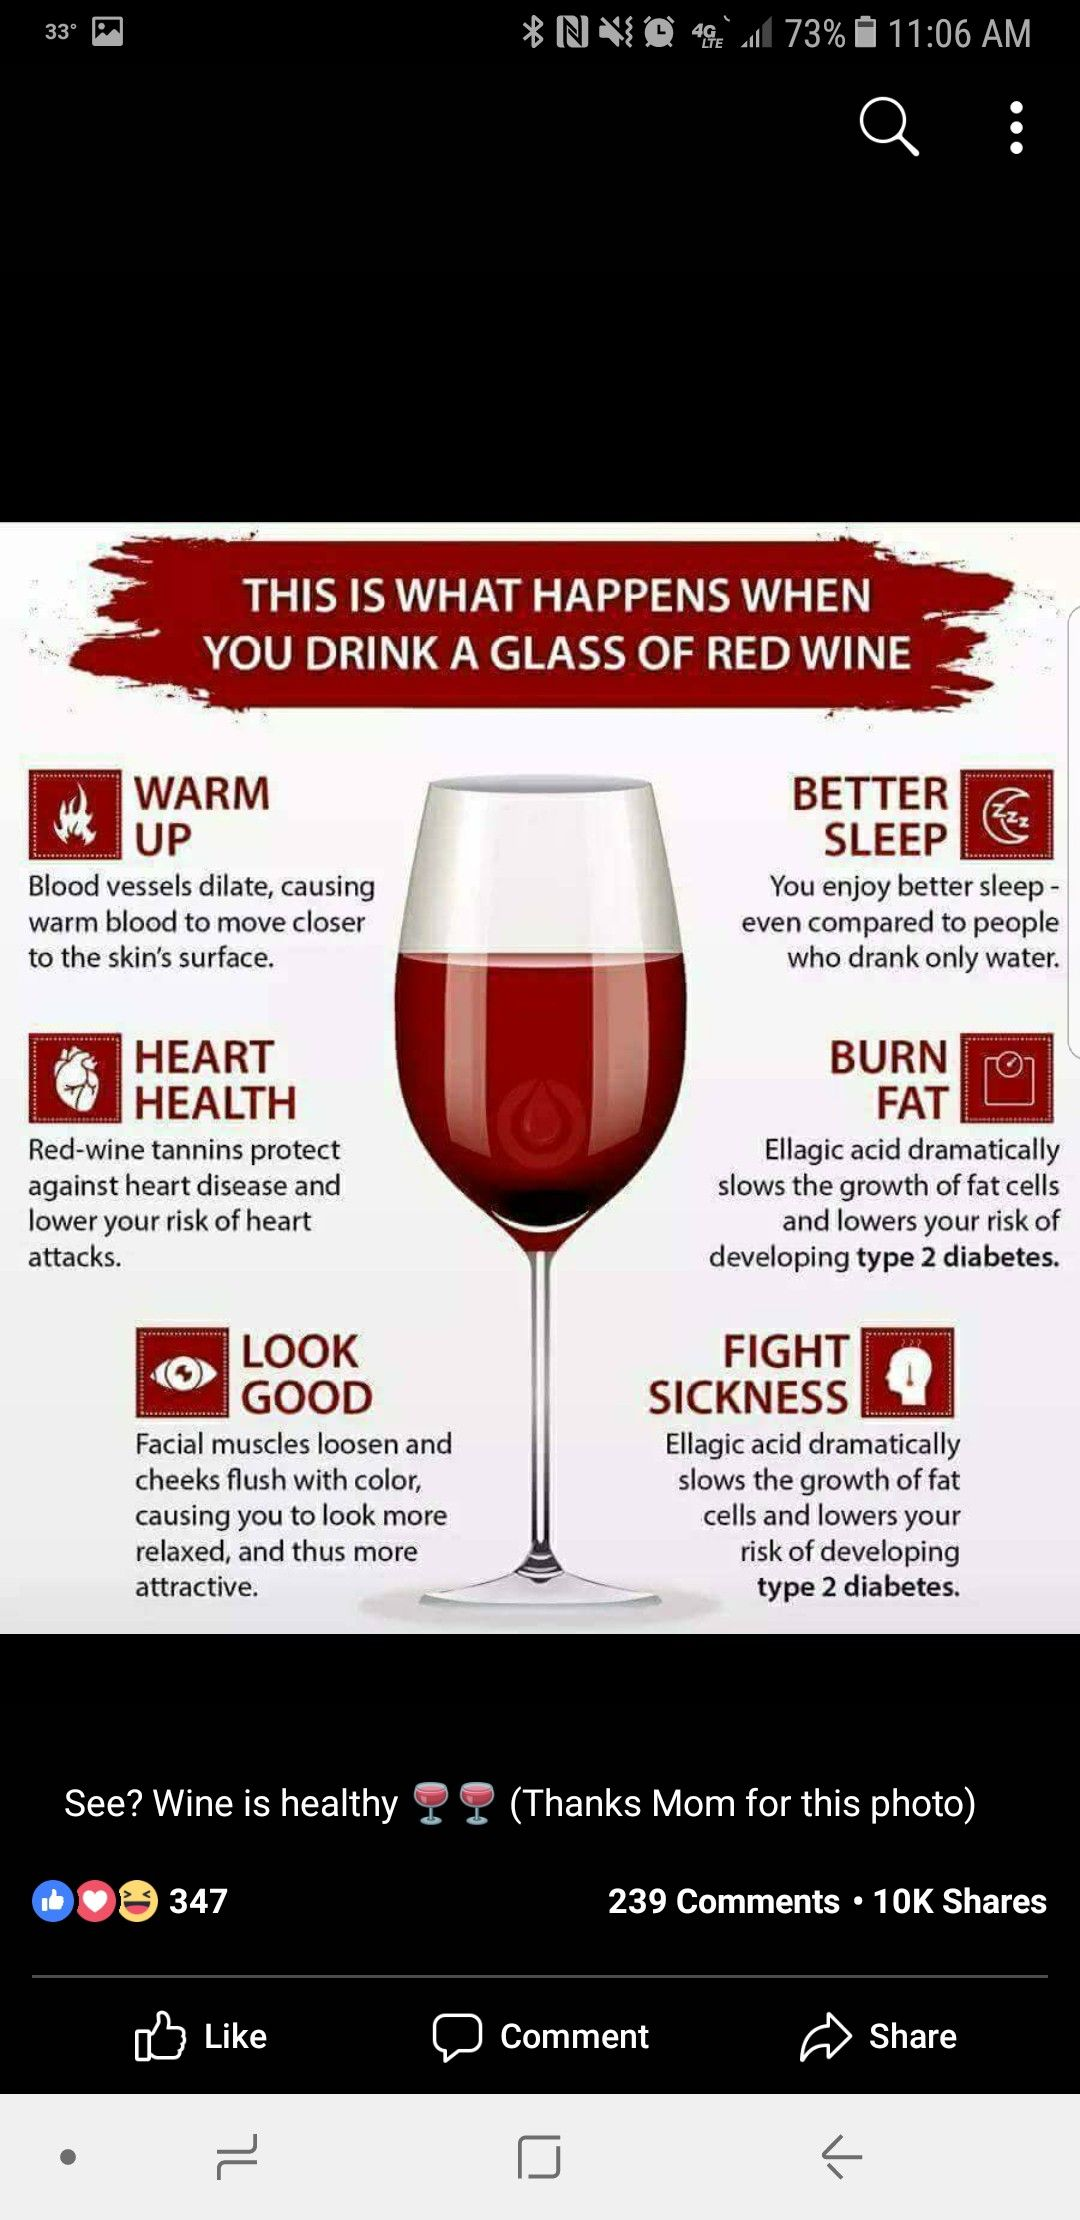 Pin By Brandi Orheim On Health Red Wine Benefits Red Wine Health Benefits Red Wine